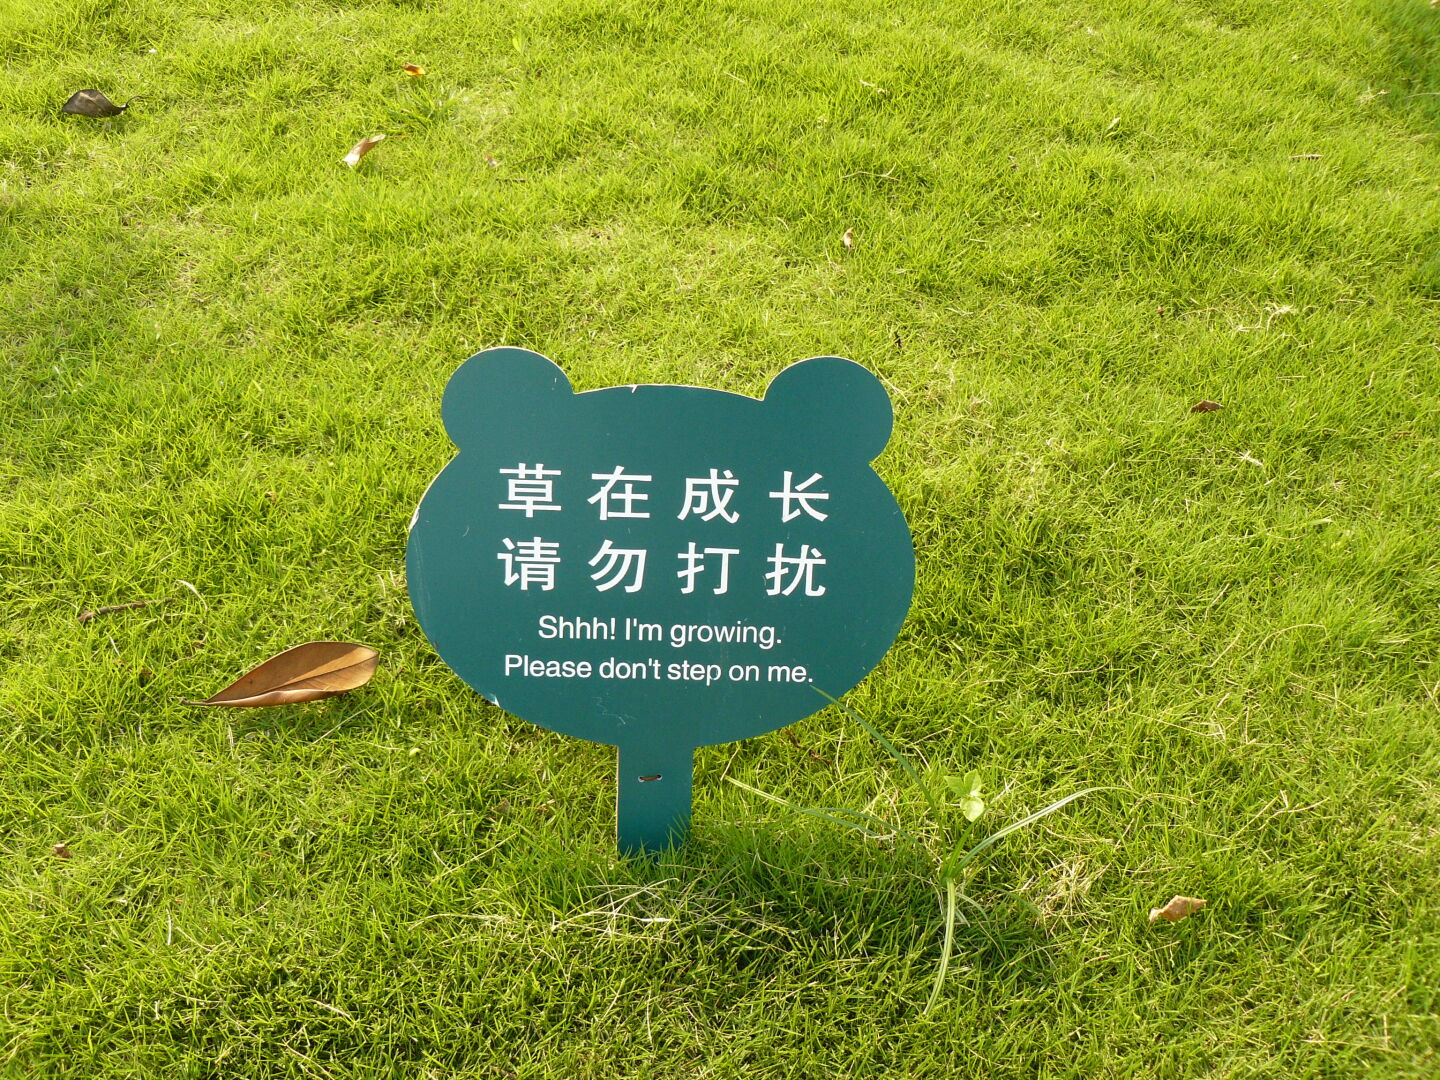 A very polite way to say 'keep off the grass'.